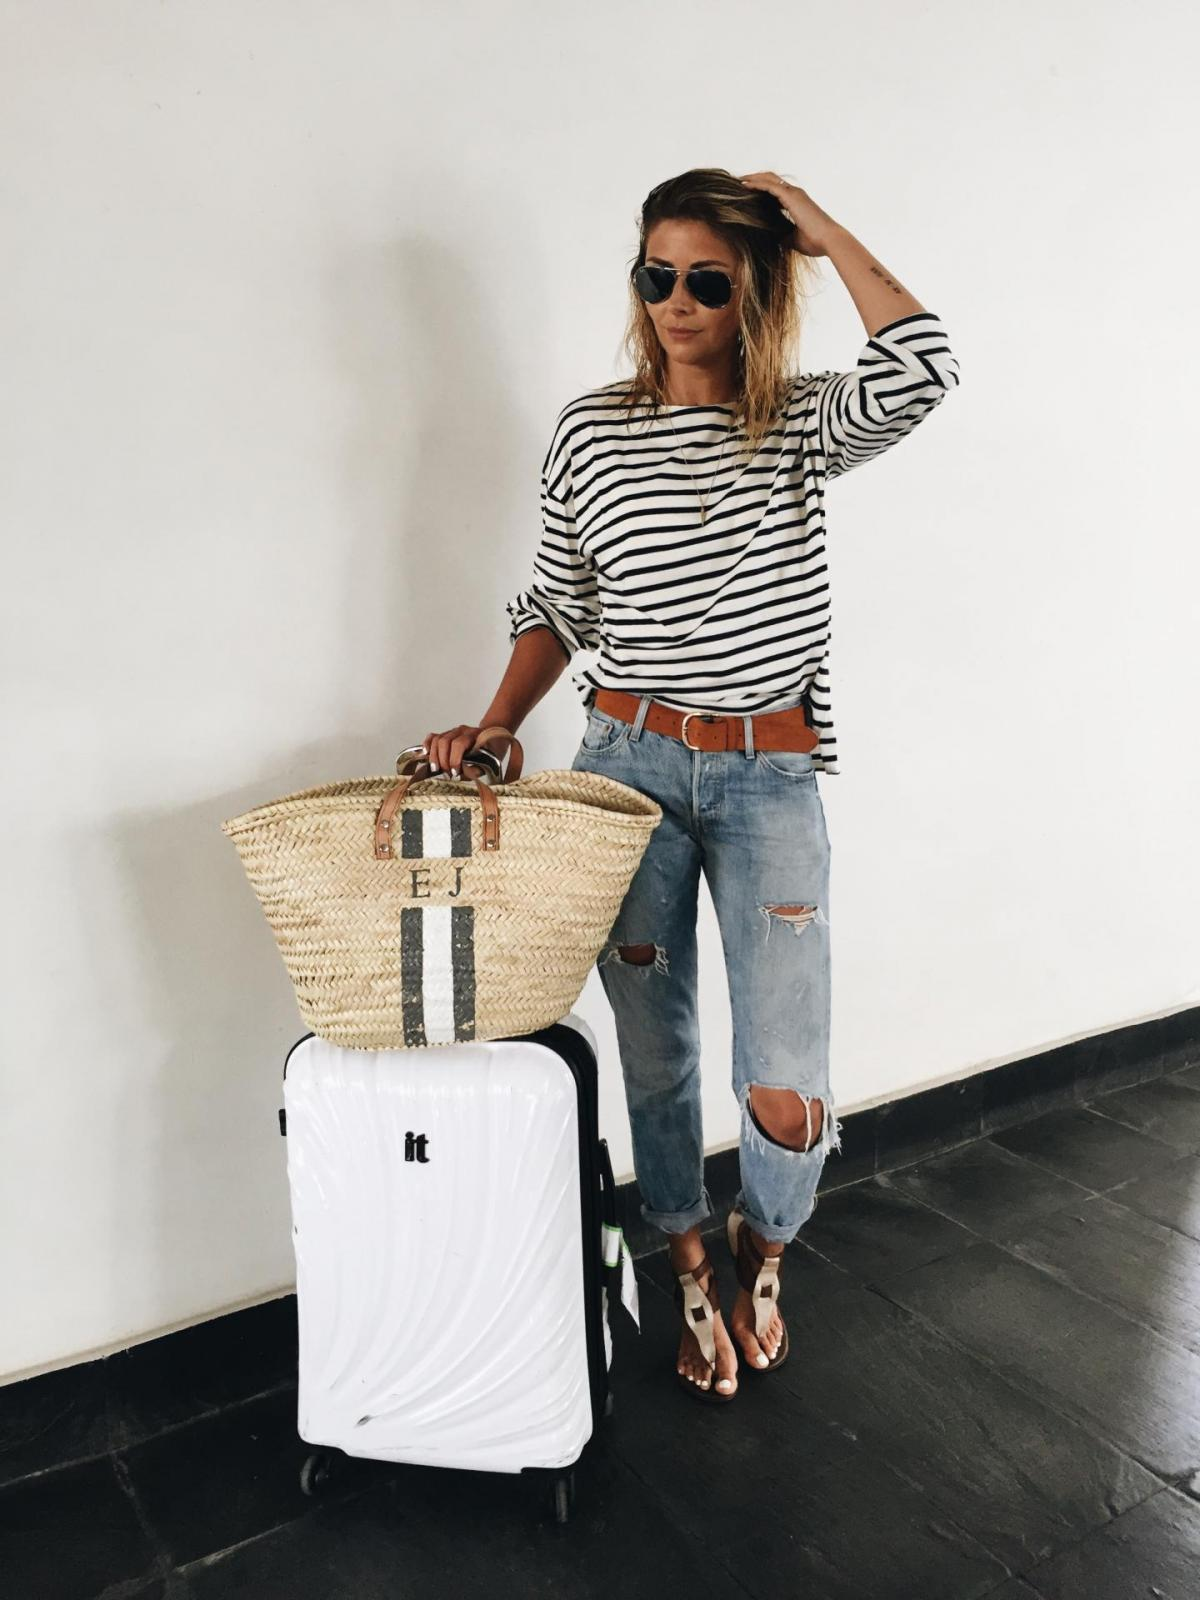 travel airport outfit, breton stripe t shirt, straw tote bag, ripped boyfriend jeans, tan belt, white suitcase, tan sandals, straw hat,